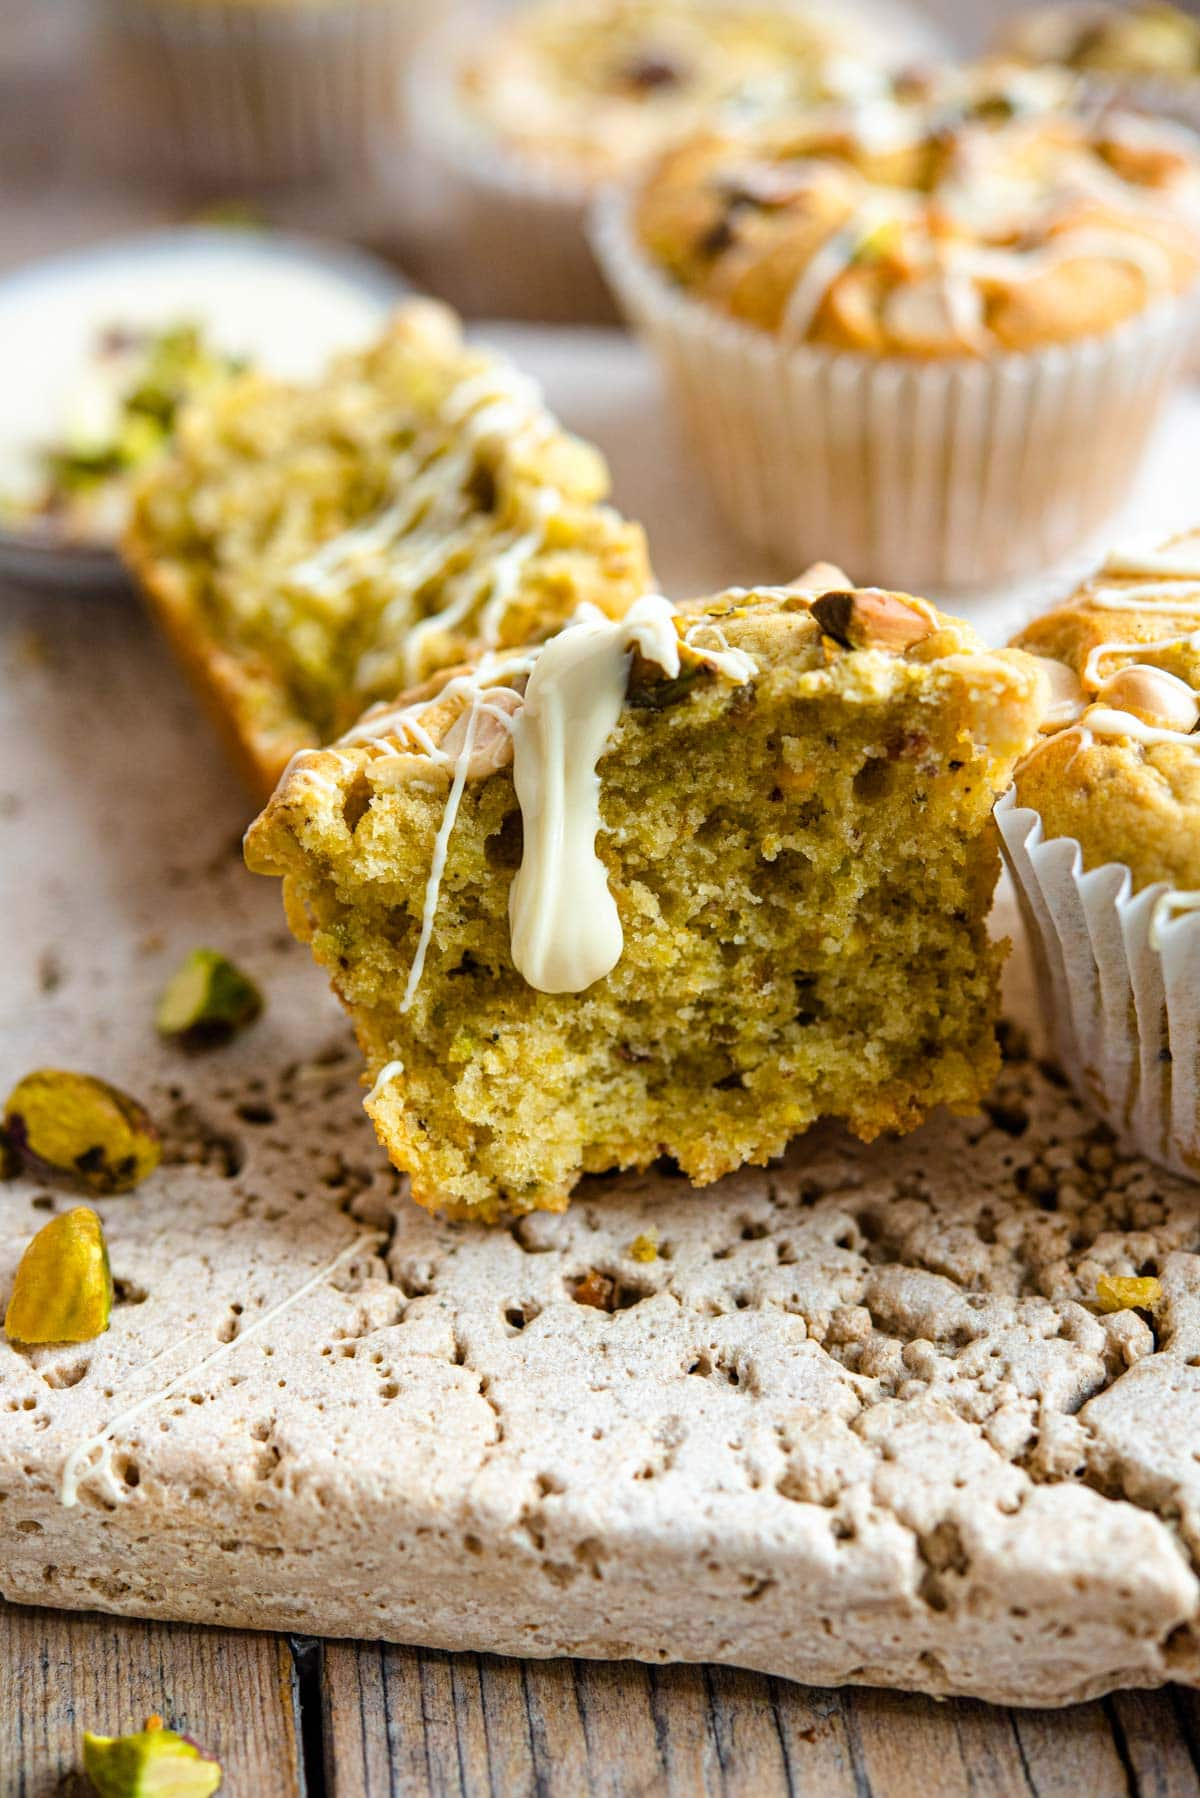 A close up of a pistachio muffin cut in half with white chocolate drizzled on top